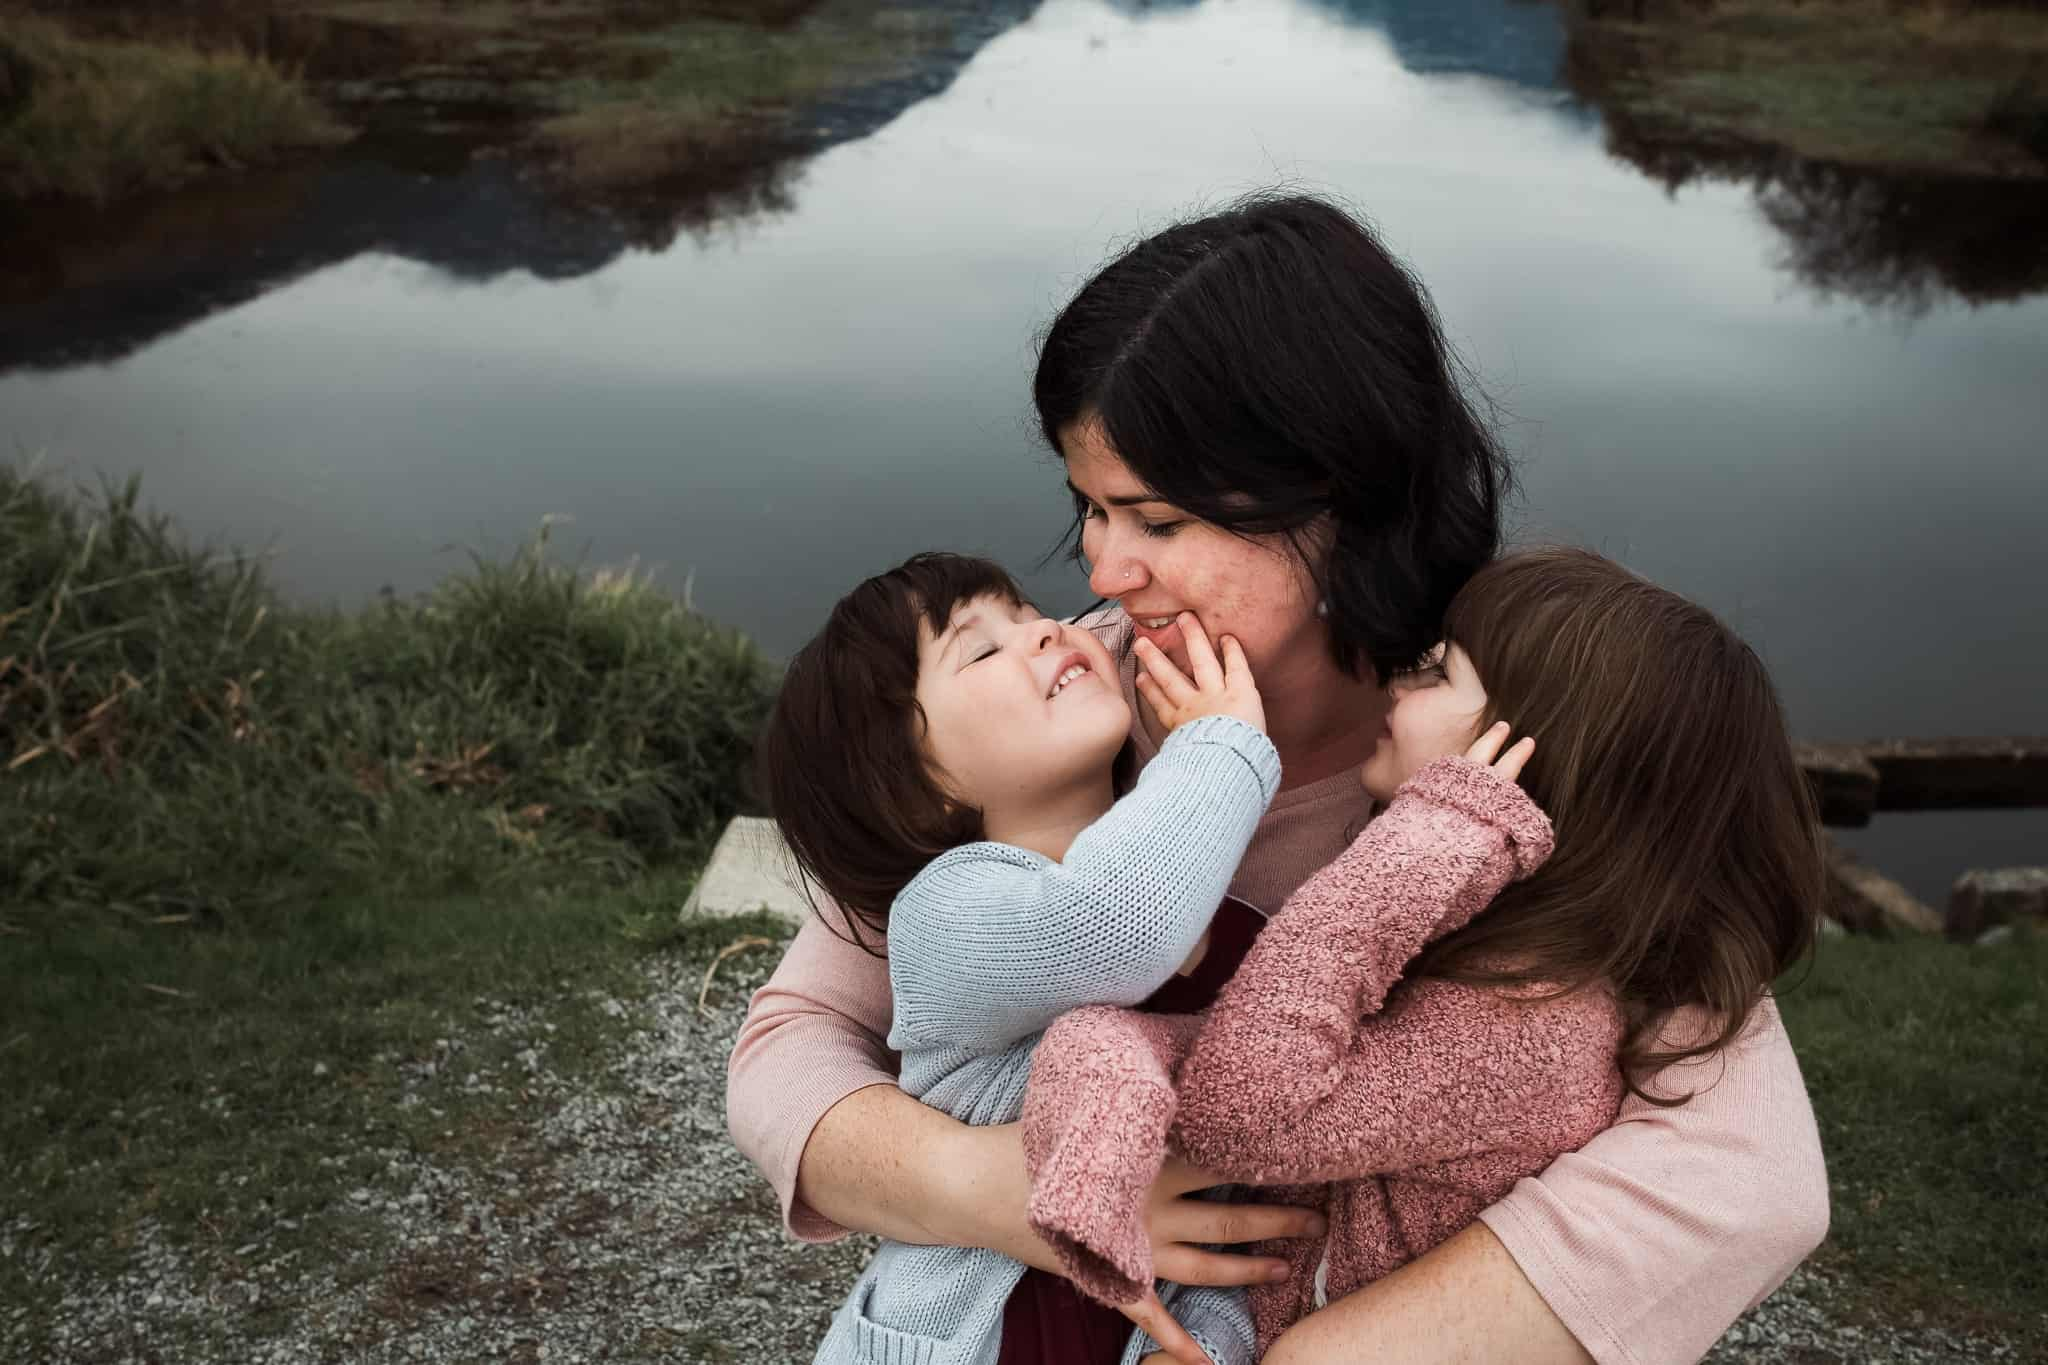 two little girls snuggling with their mom by a lake